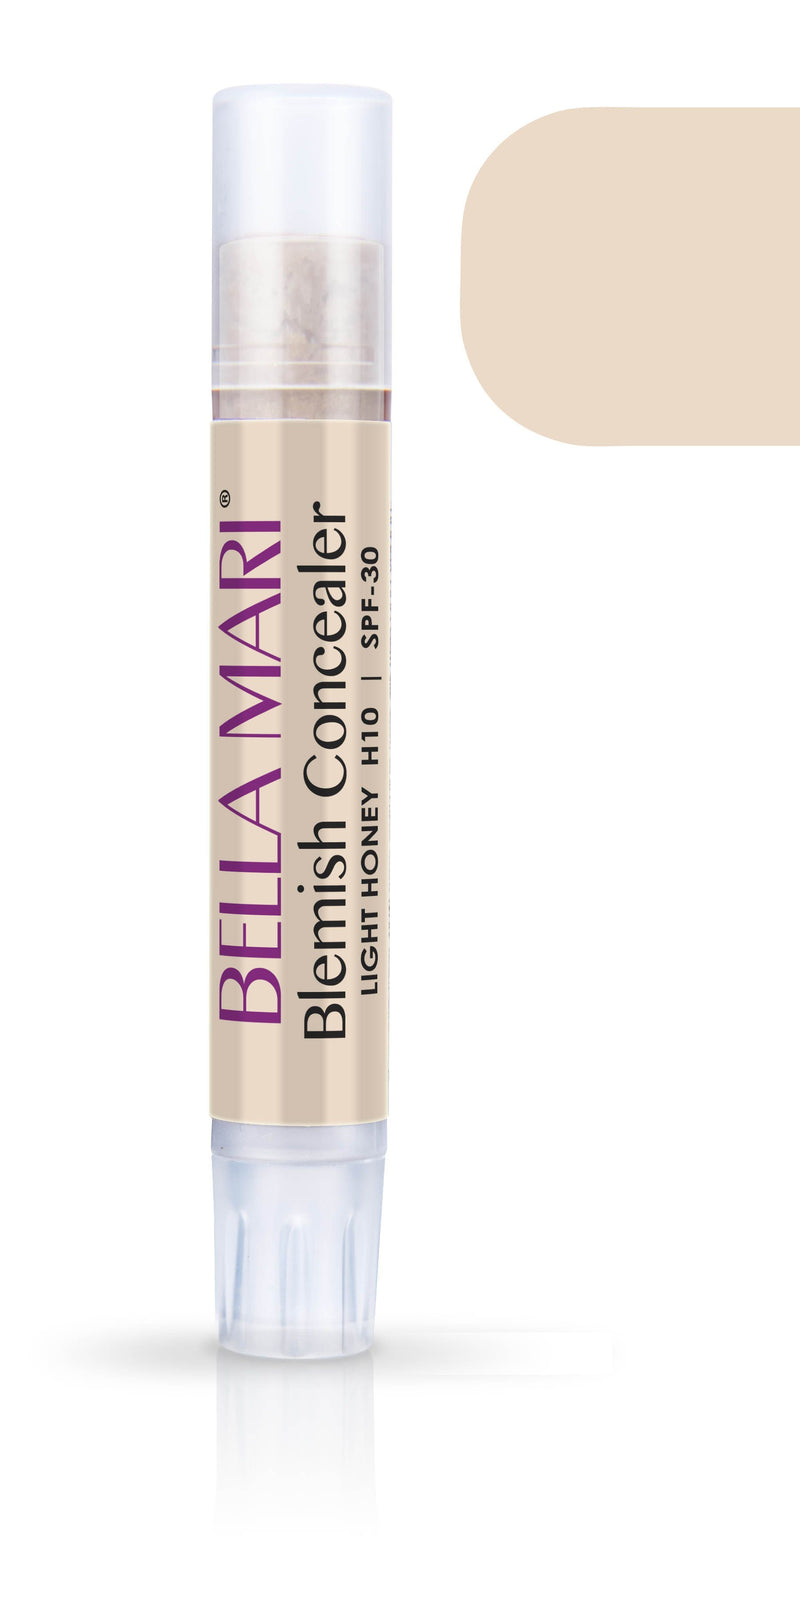 Bella Mari Natural Blemish Concealer Stick; 0.1floz - Bella Mari Natural Blemish Concealer Stick; 0.1floz - Light Honey